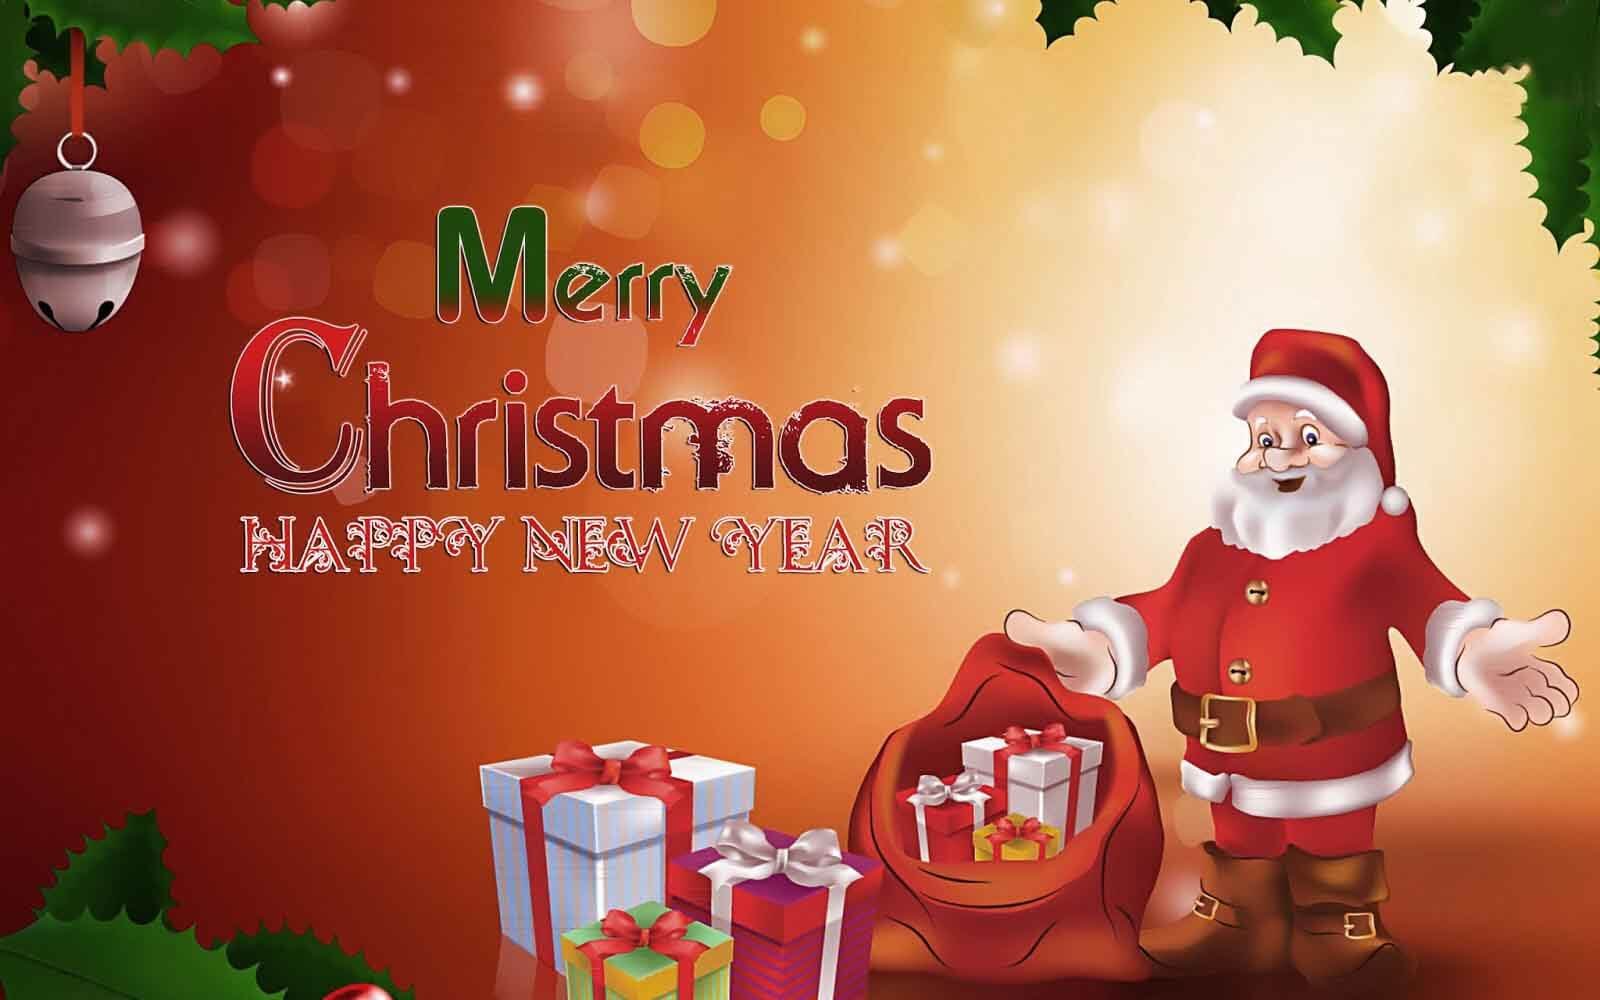 merry christmas latest xmas-picture  free download 2016